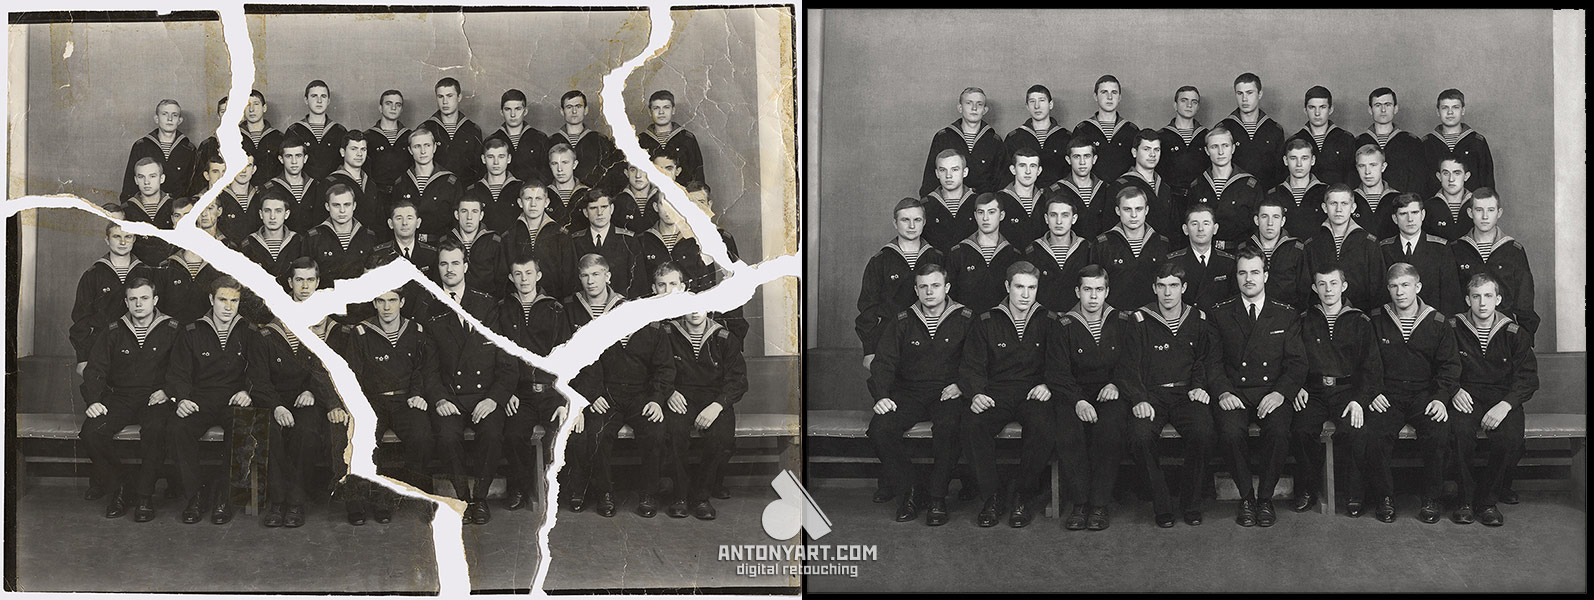 restore torn photo from a large number of people